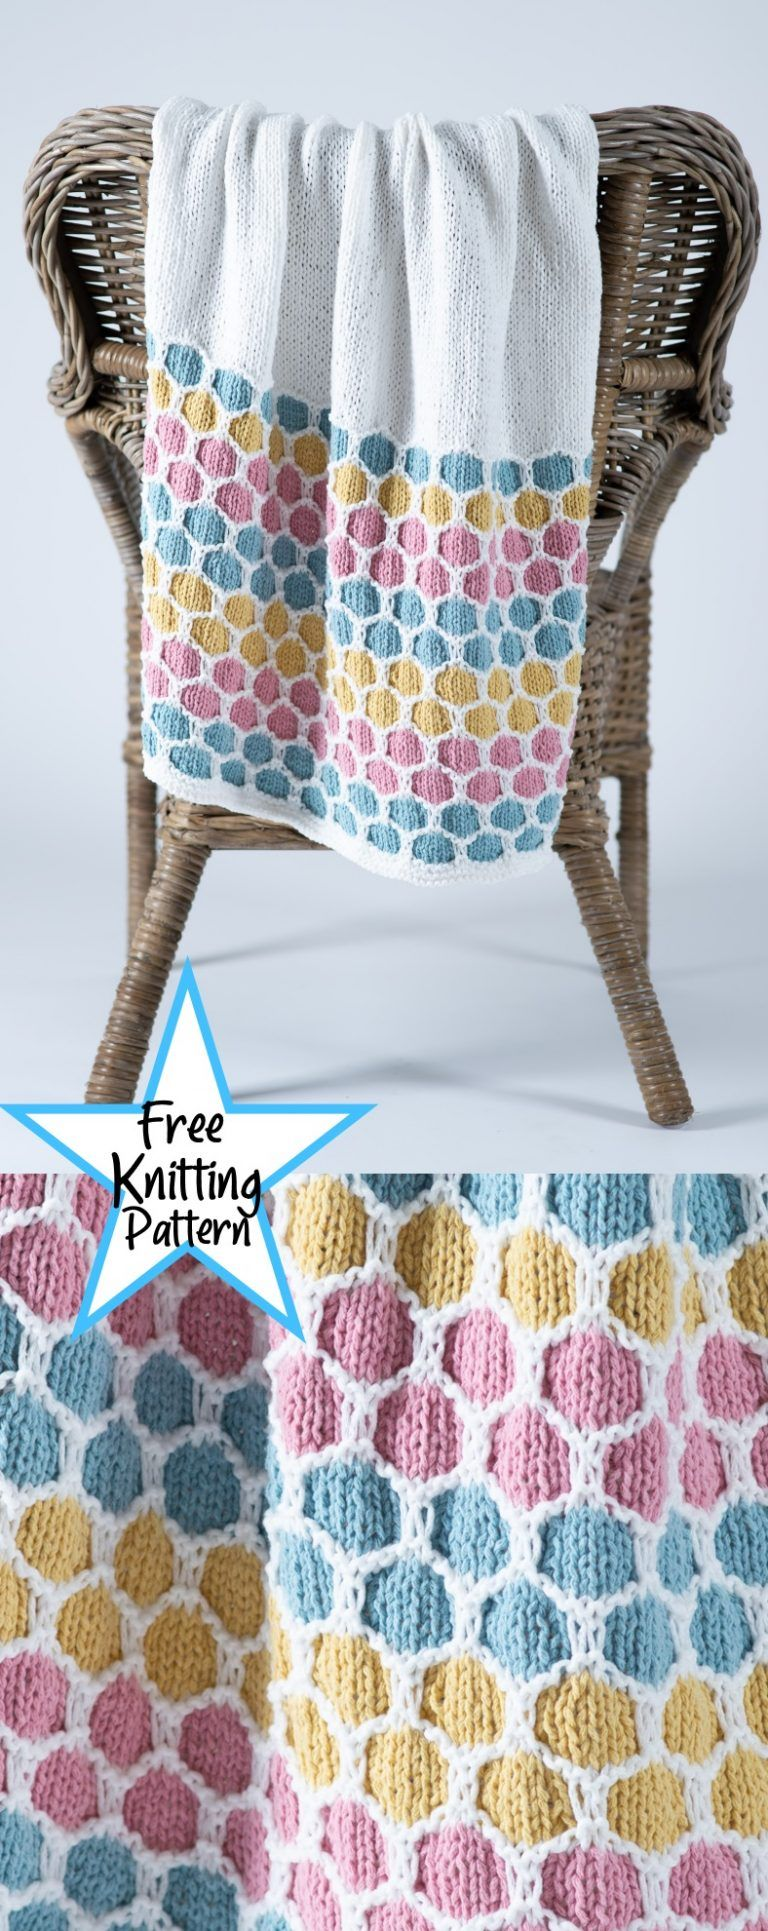 50+New Baby Knitting Patterns Free for 2020 Download them ...